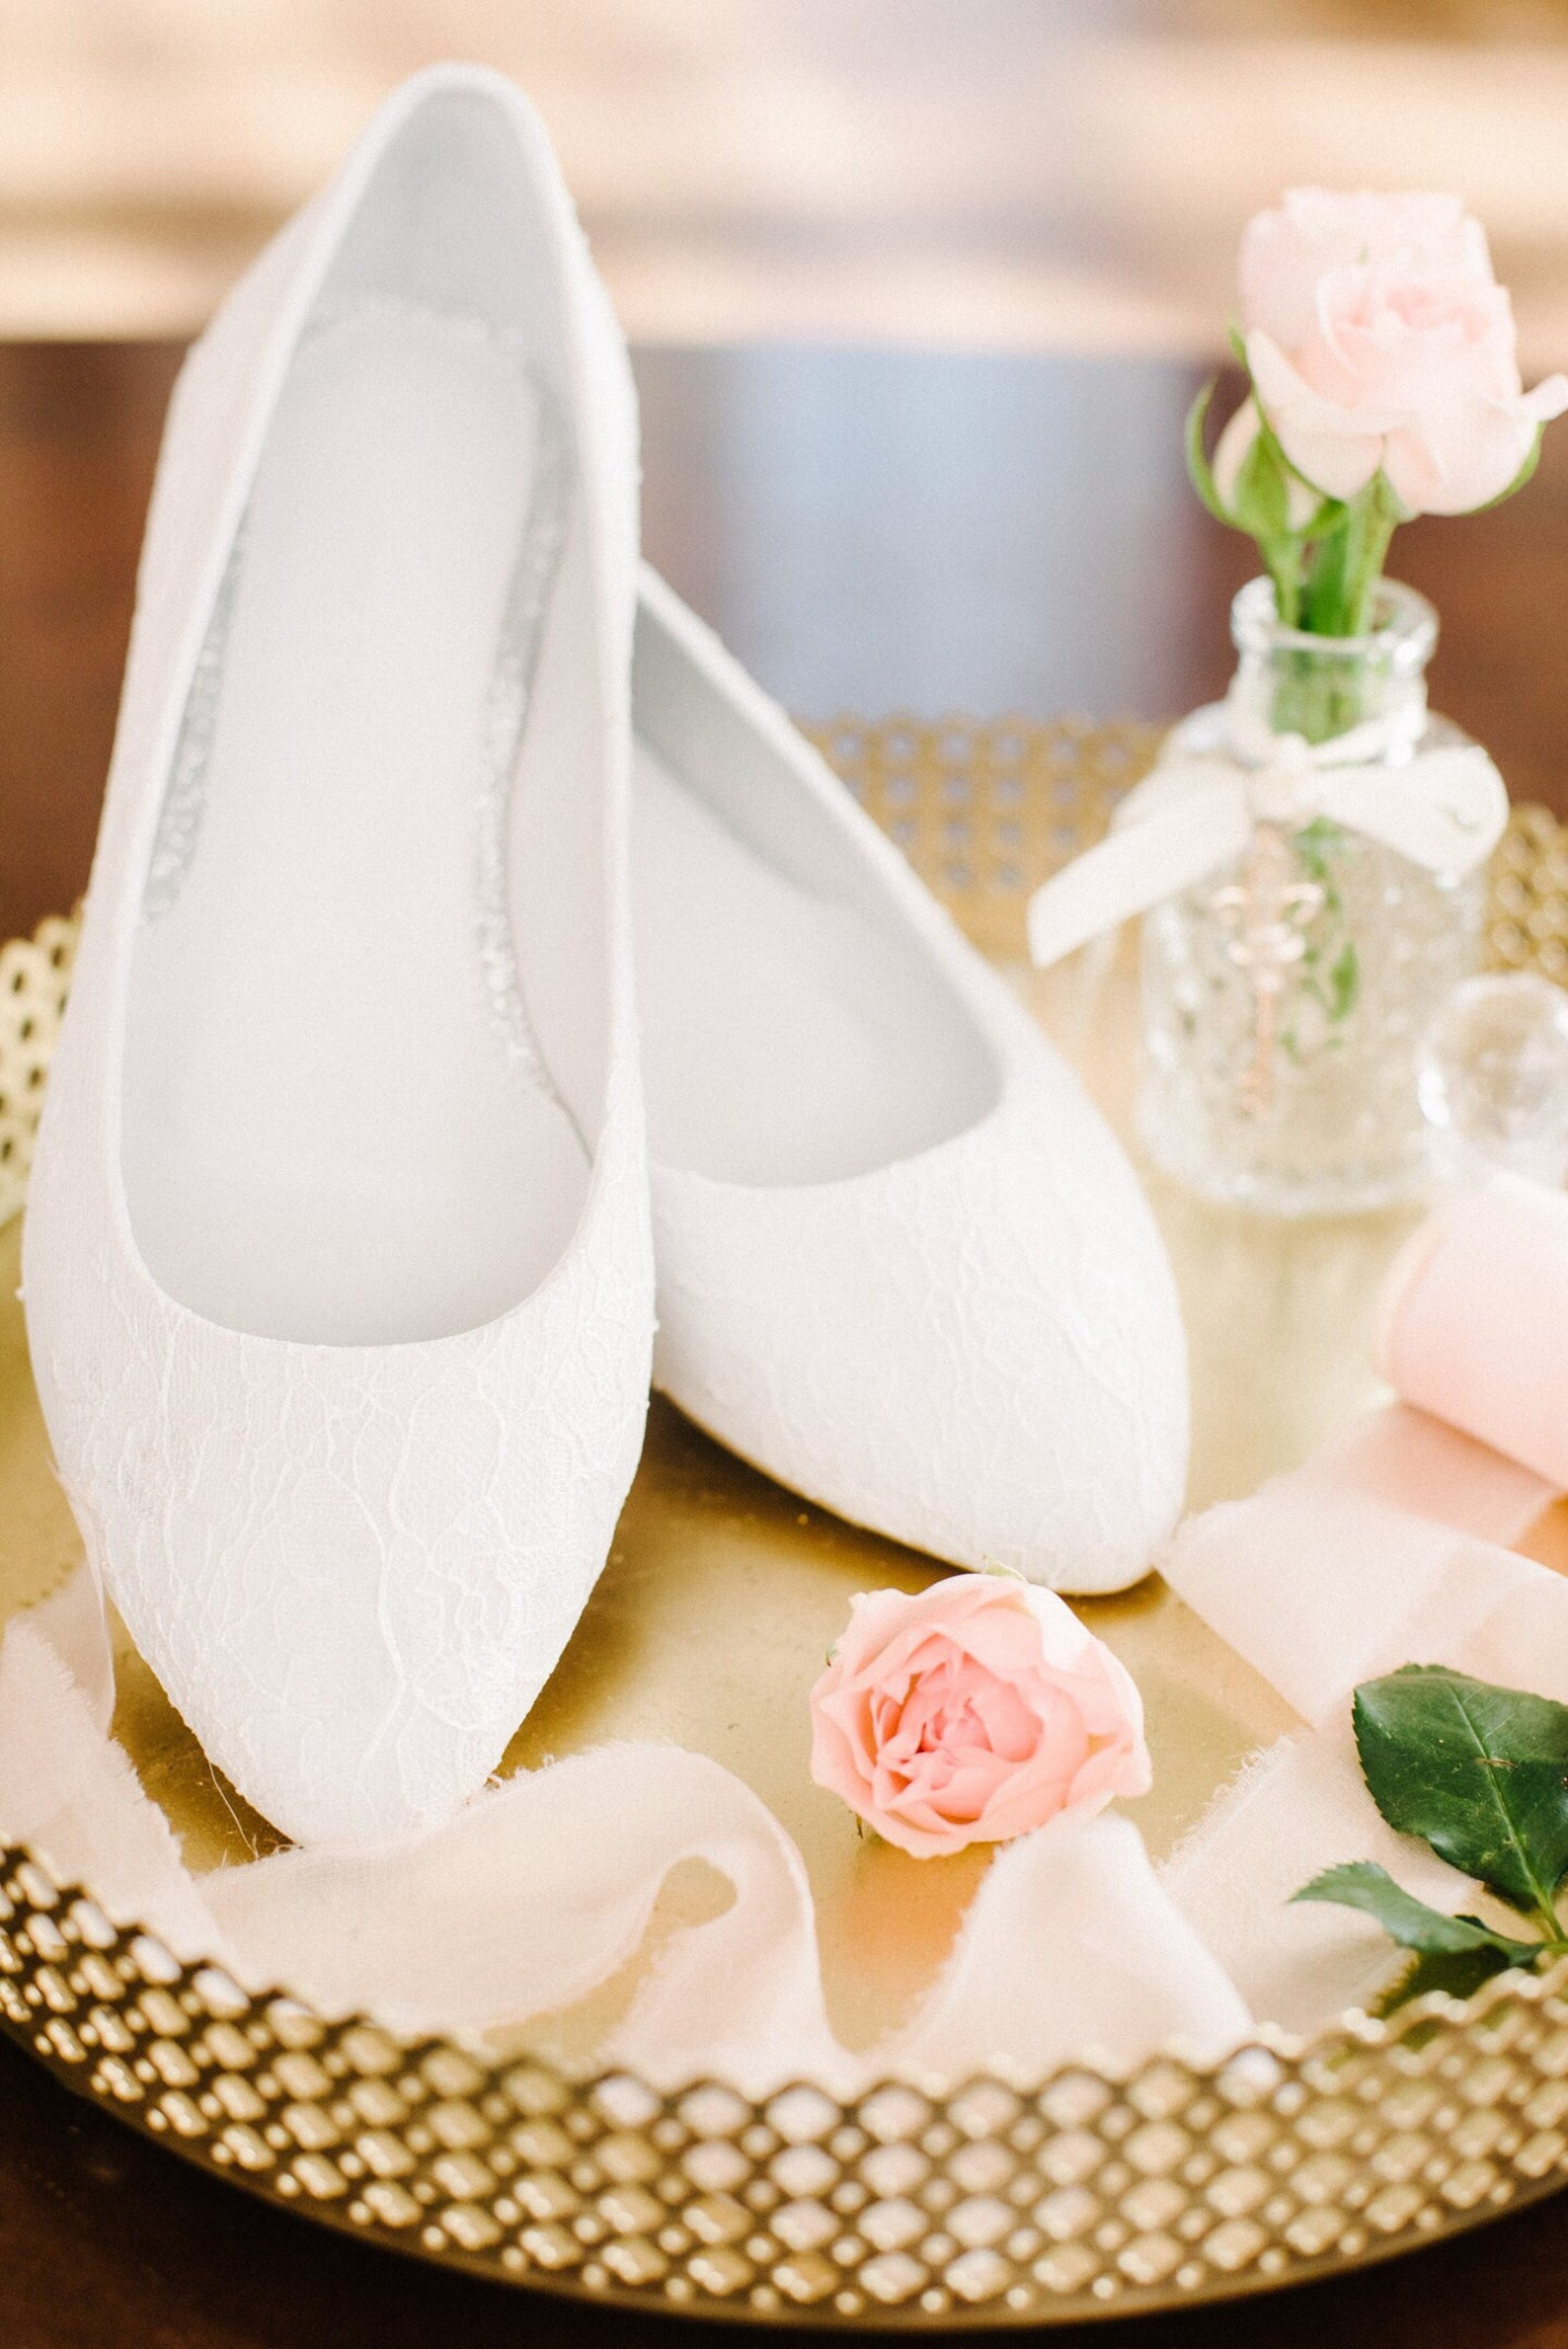 lace wedding shoes, wedding shoes, bridal ballet flats, low wedding shoes, bridal flats, wedding flats, white wedding shoes, bal